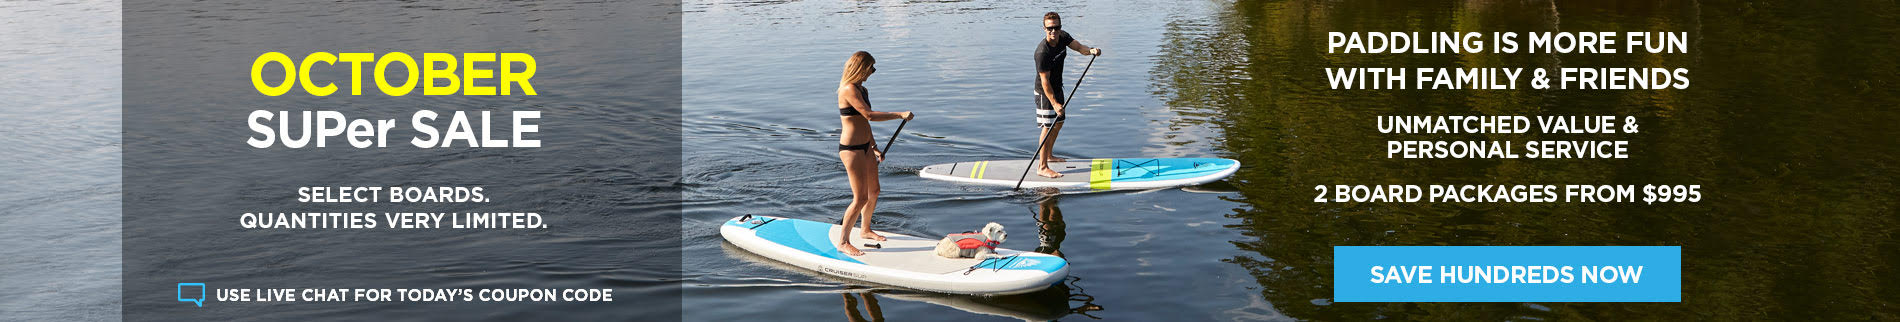 Stand Up Paddle Board SUPer Sale - Up to 40% Off Board Packages from $495